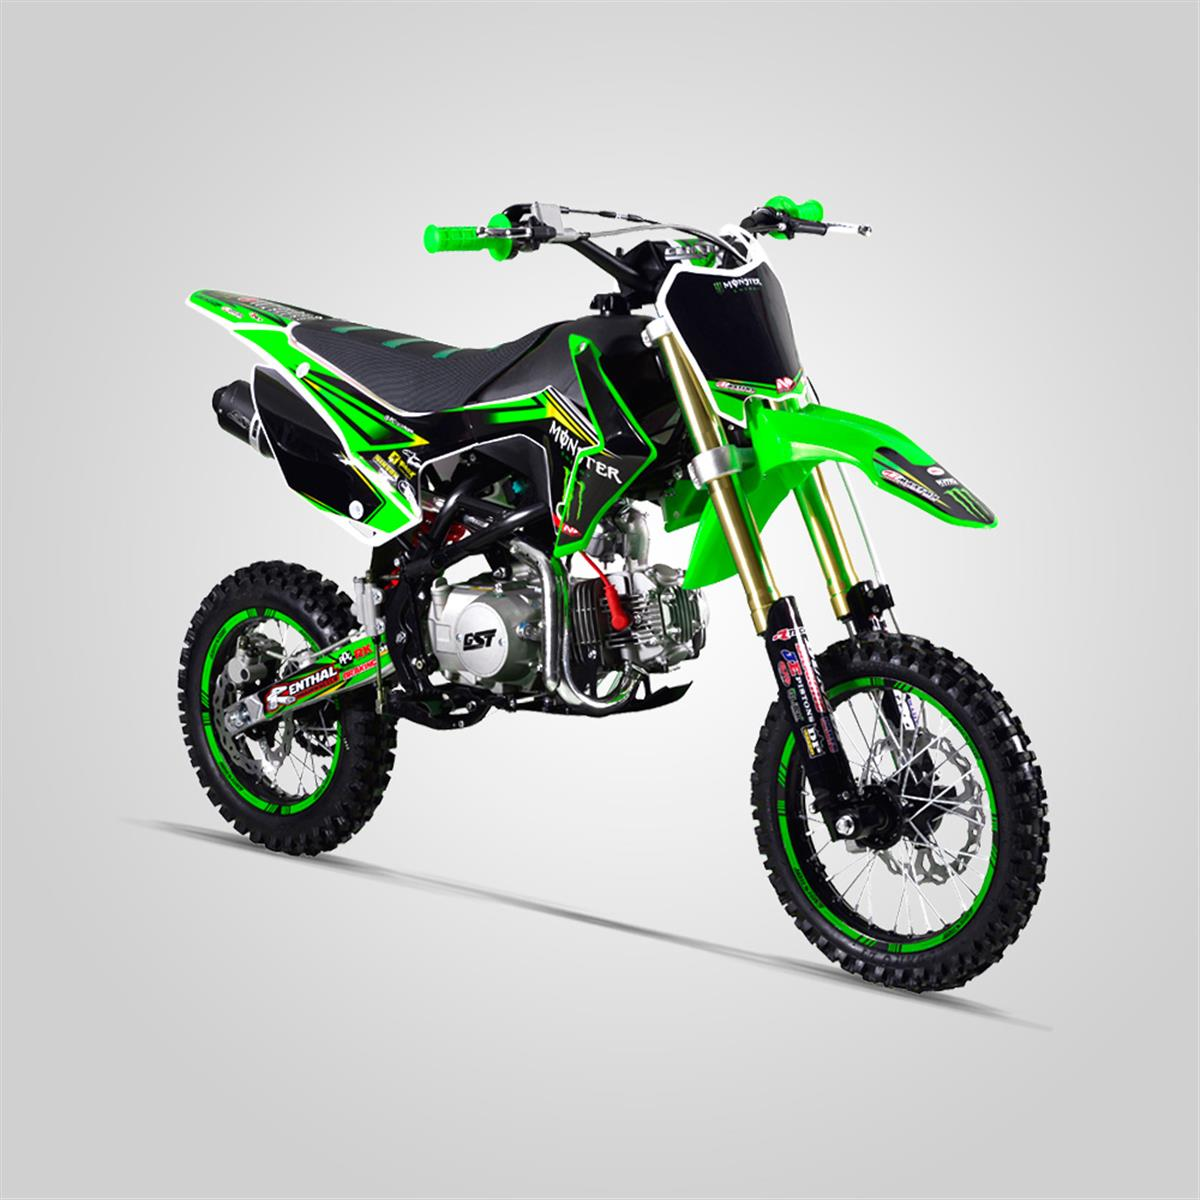 dirt bike 125cc gunshot 12 14 smallmx dirt bike pit bike quads minimoto. Black Bedroom Furniture Sets. Home Design Ideas